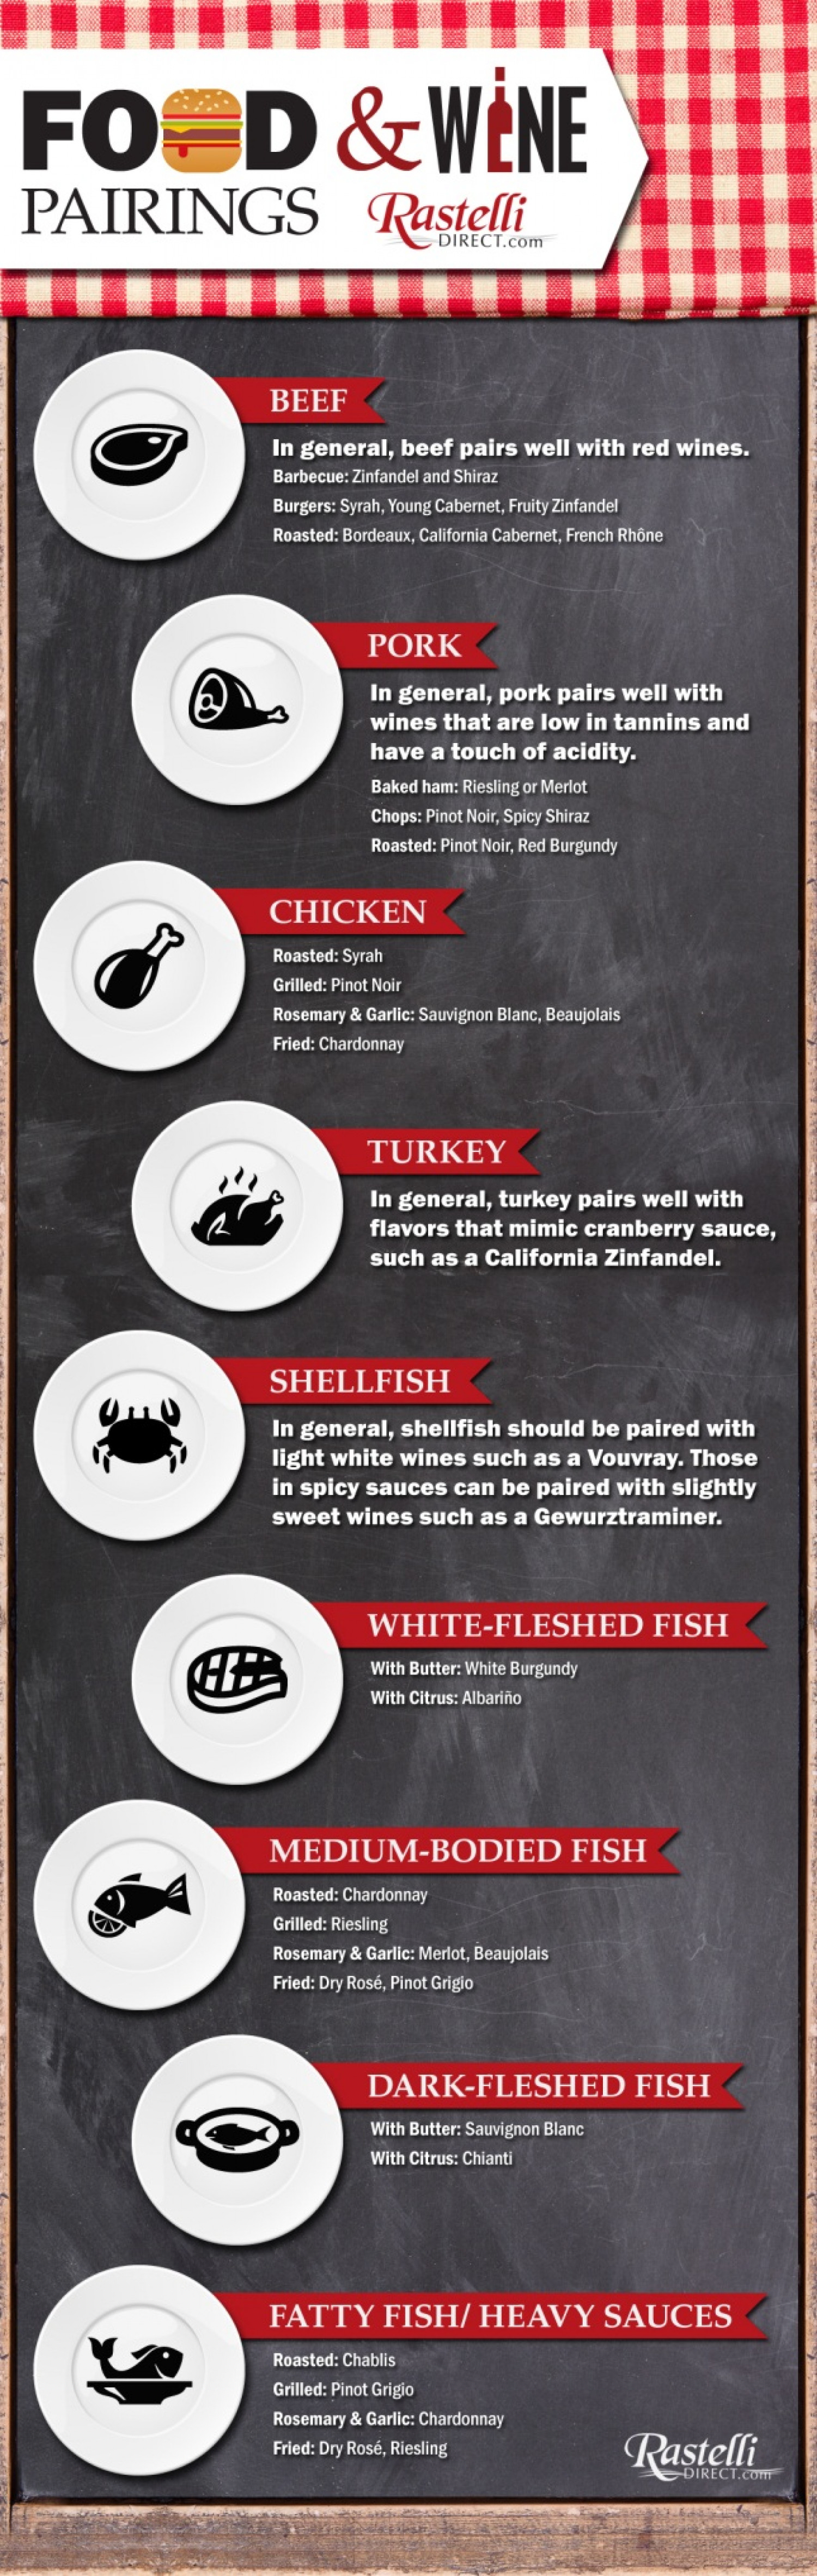 Food and Wine Pairings Infographic